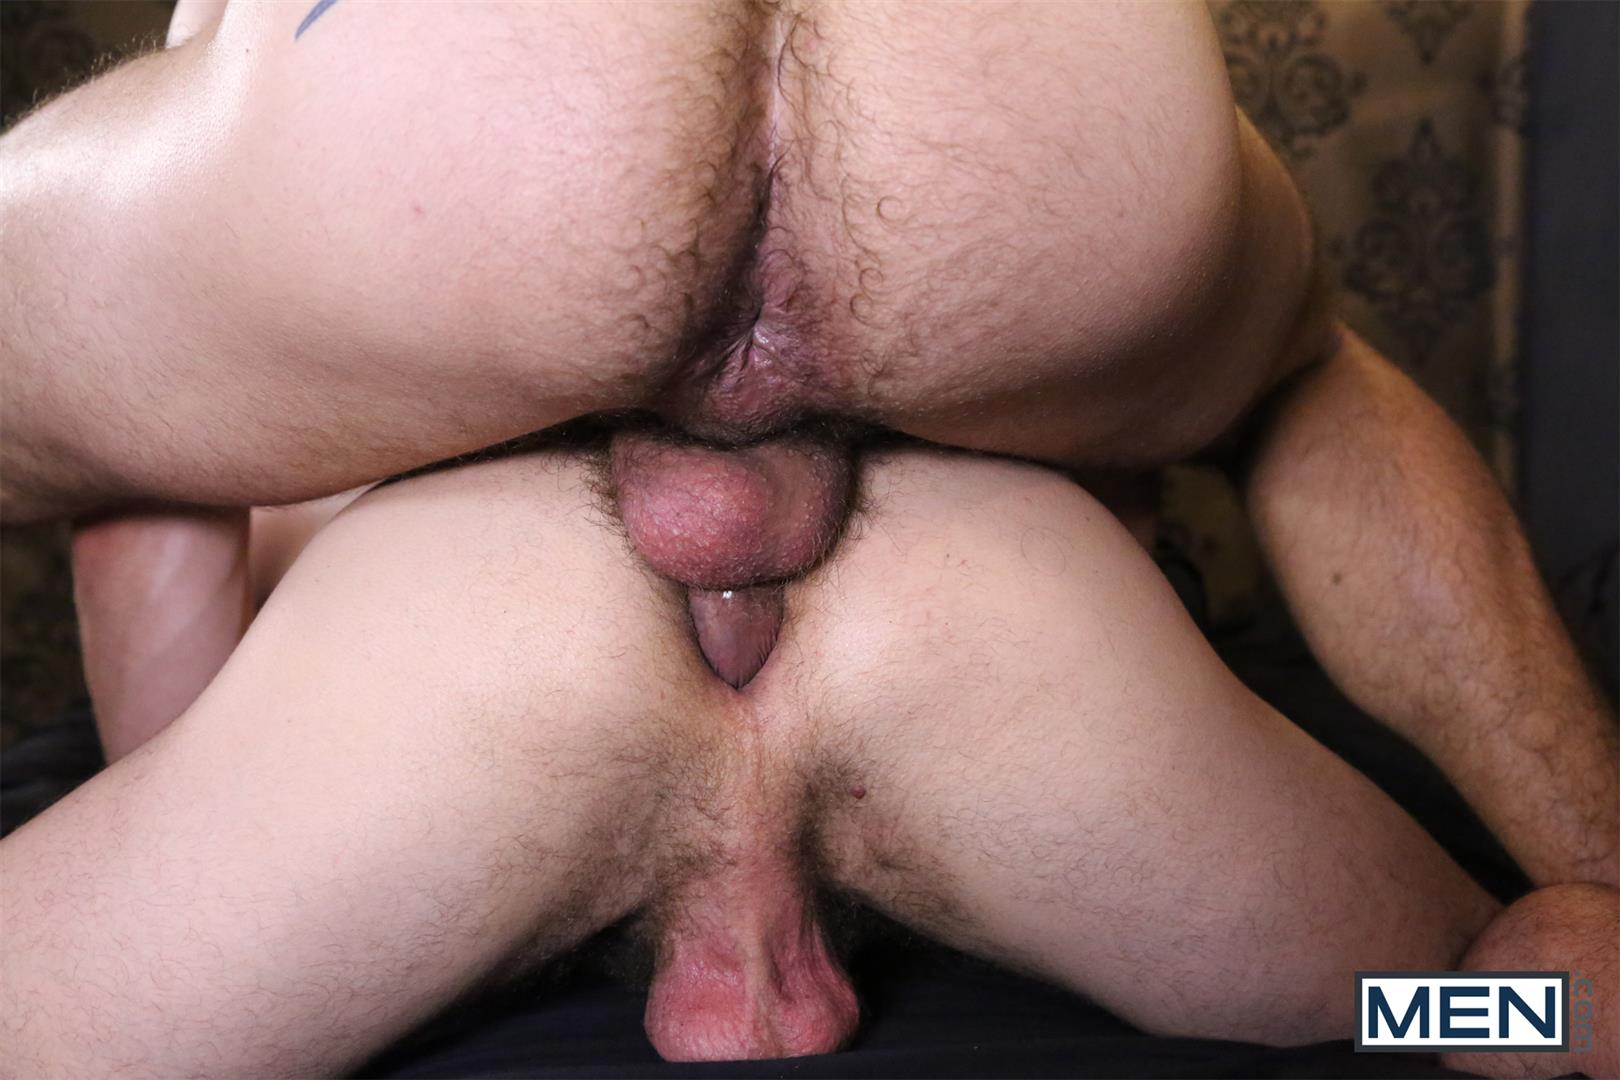 Gods-of-Men-Colt-Rivers-and-Dale-Cooper-Muscle-Hunks-Fucking-And-Cum-Facial-Amateur-Gay-Porn-17 Muscle Hunks Fucking Ends In A Face Full Of Cum